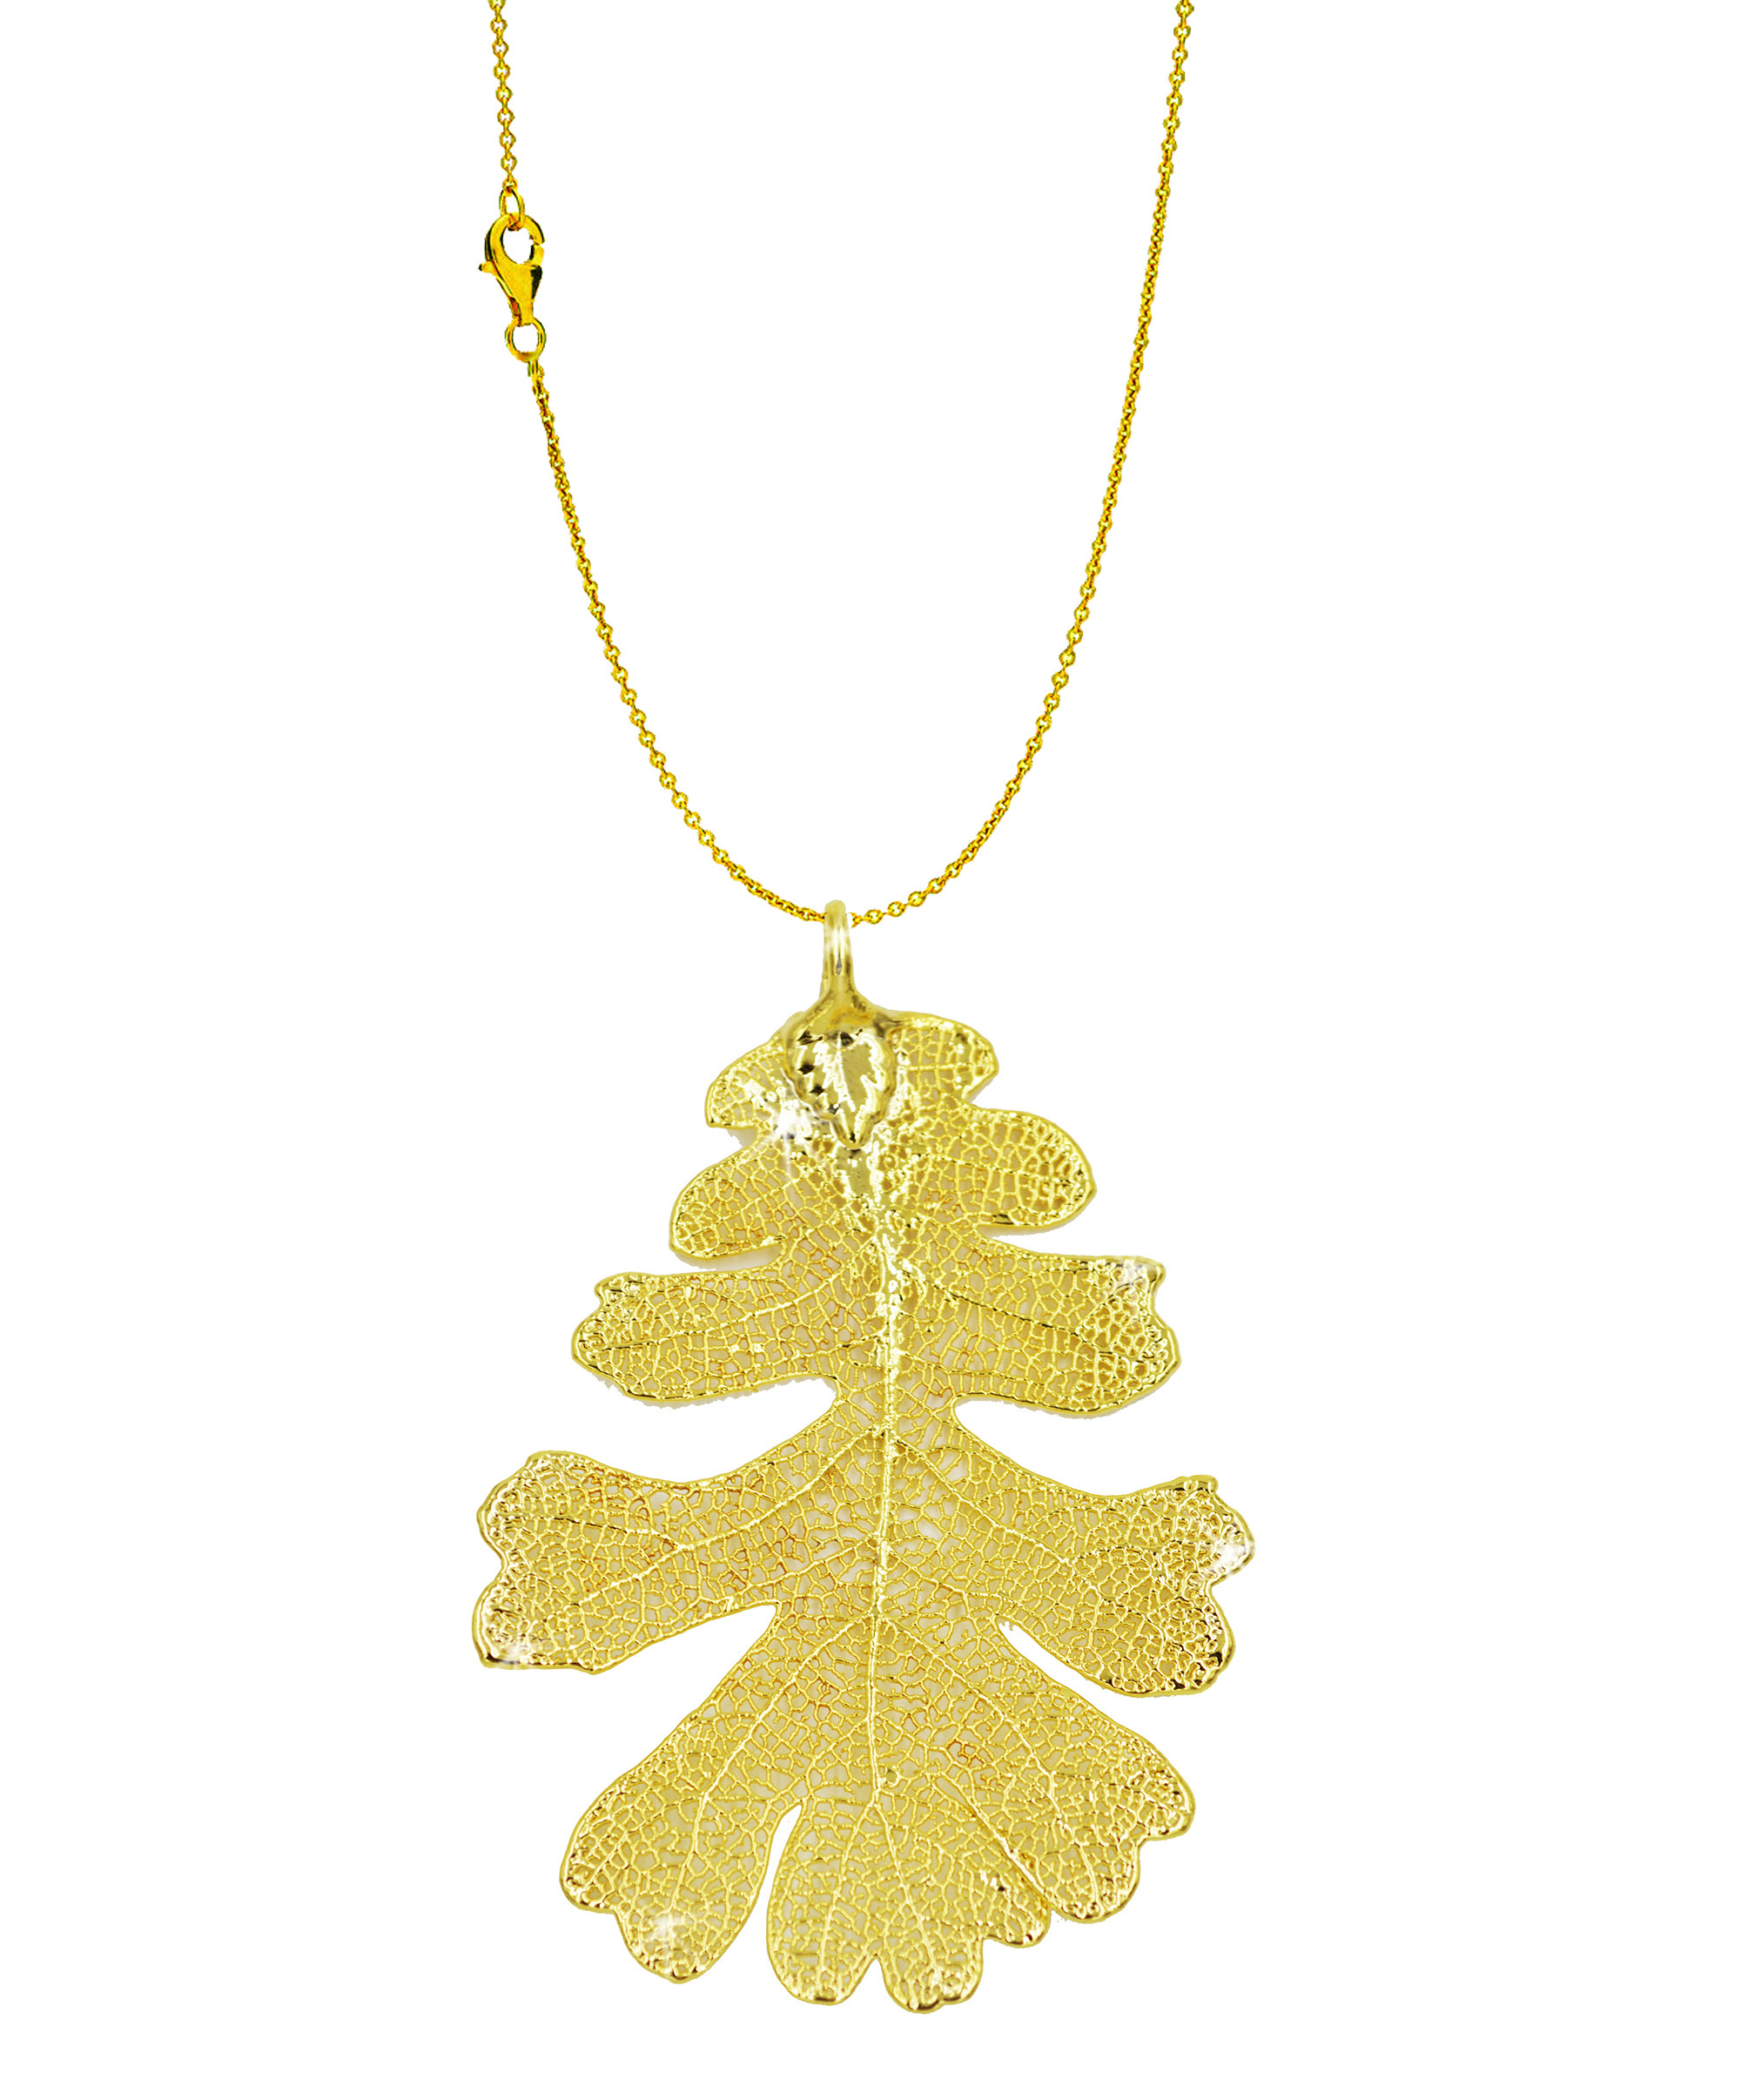 detail leaf jewelry pendant natural bodhi fashion larger gold product necklace view image real